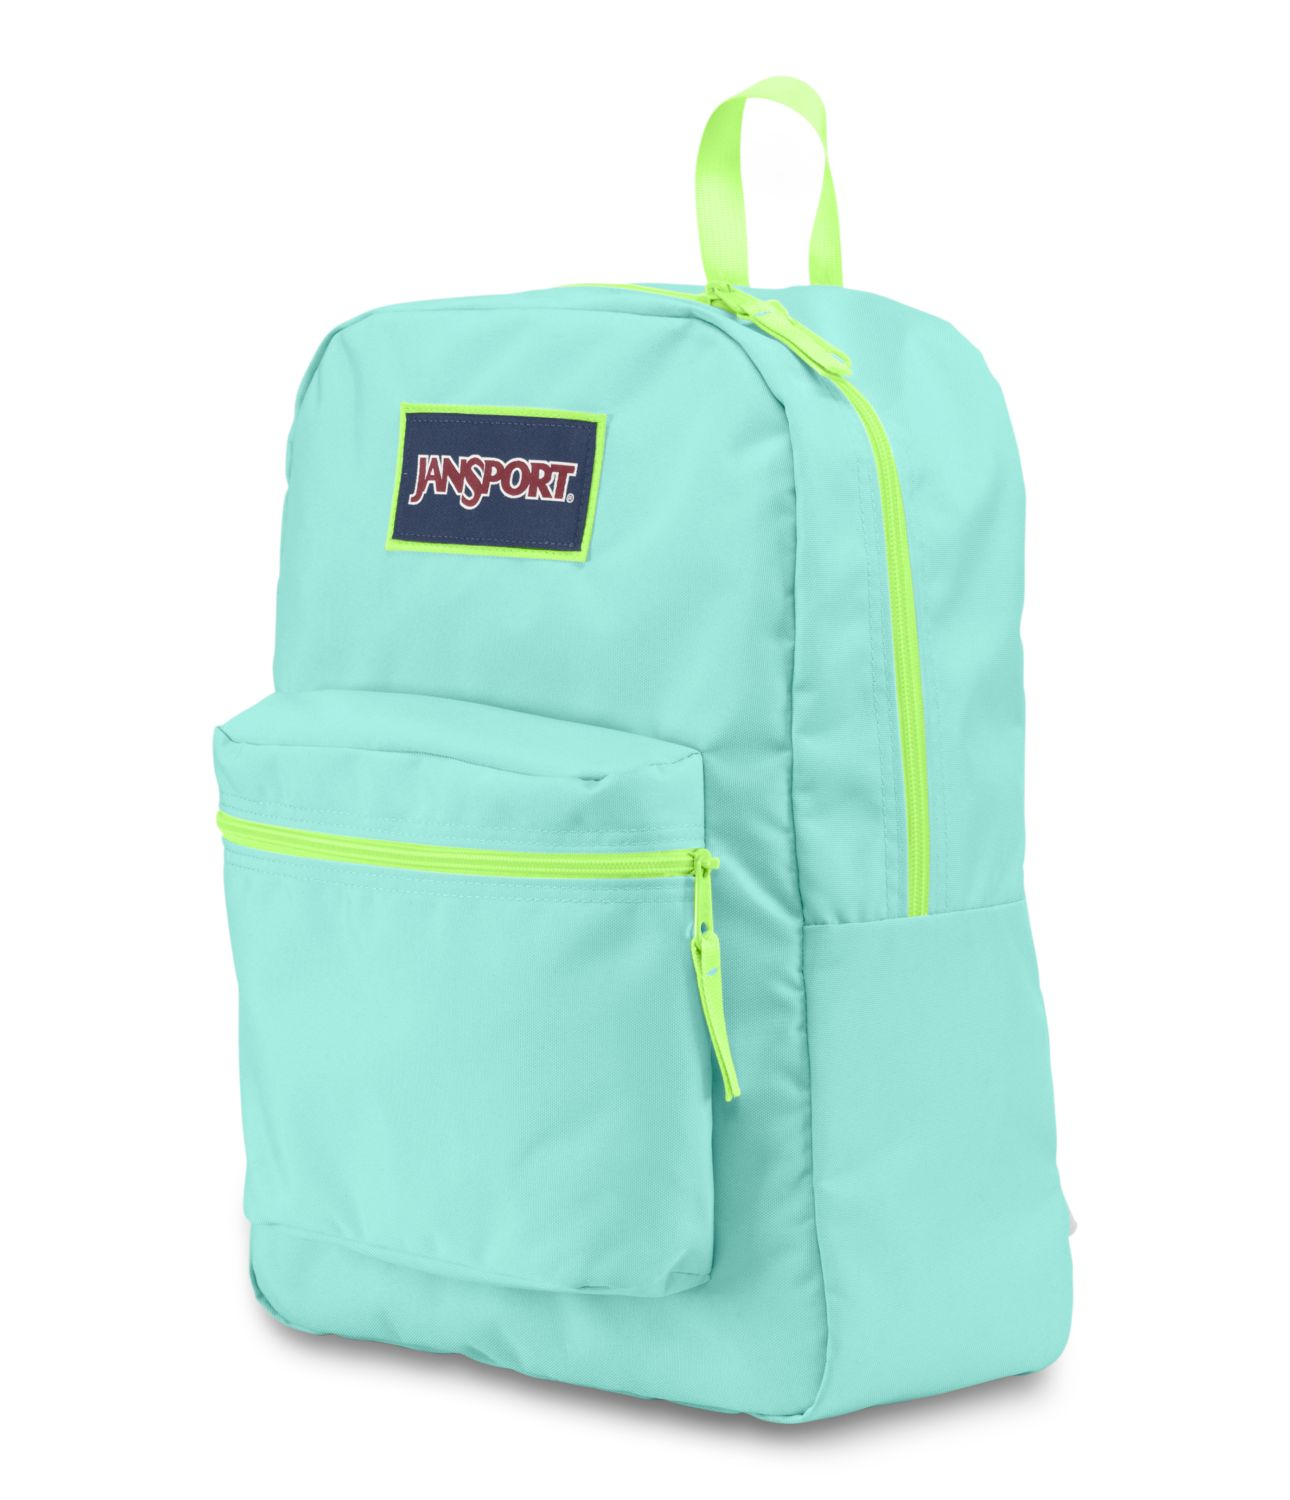 JanSport Overexposed School Backpack - Aqua Dash/Lorac Yellow